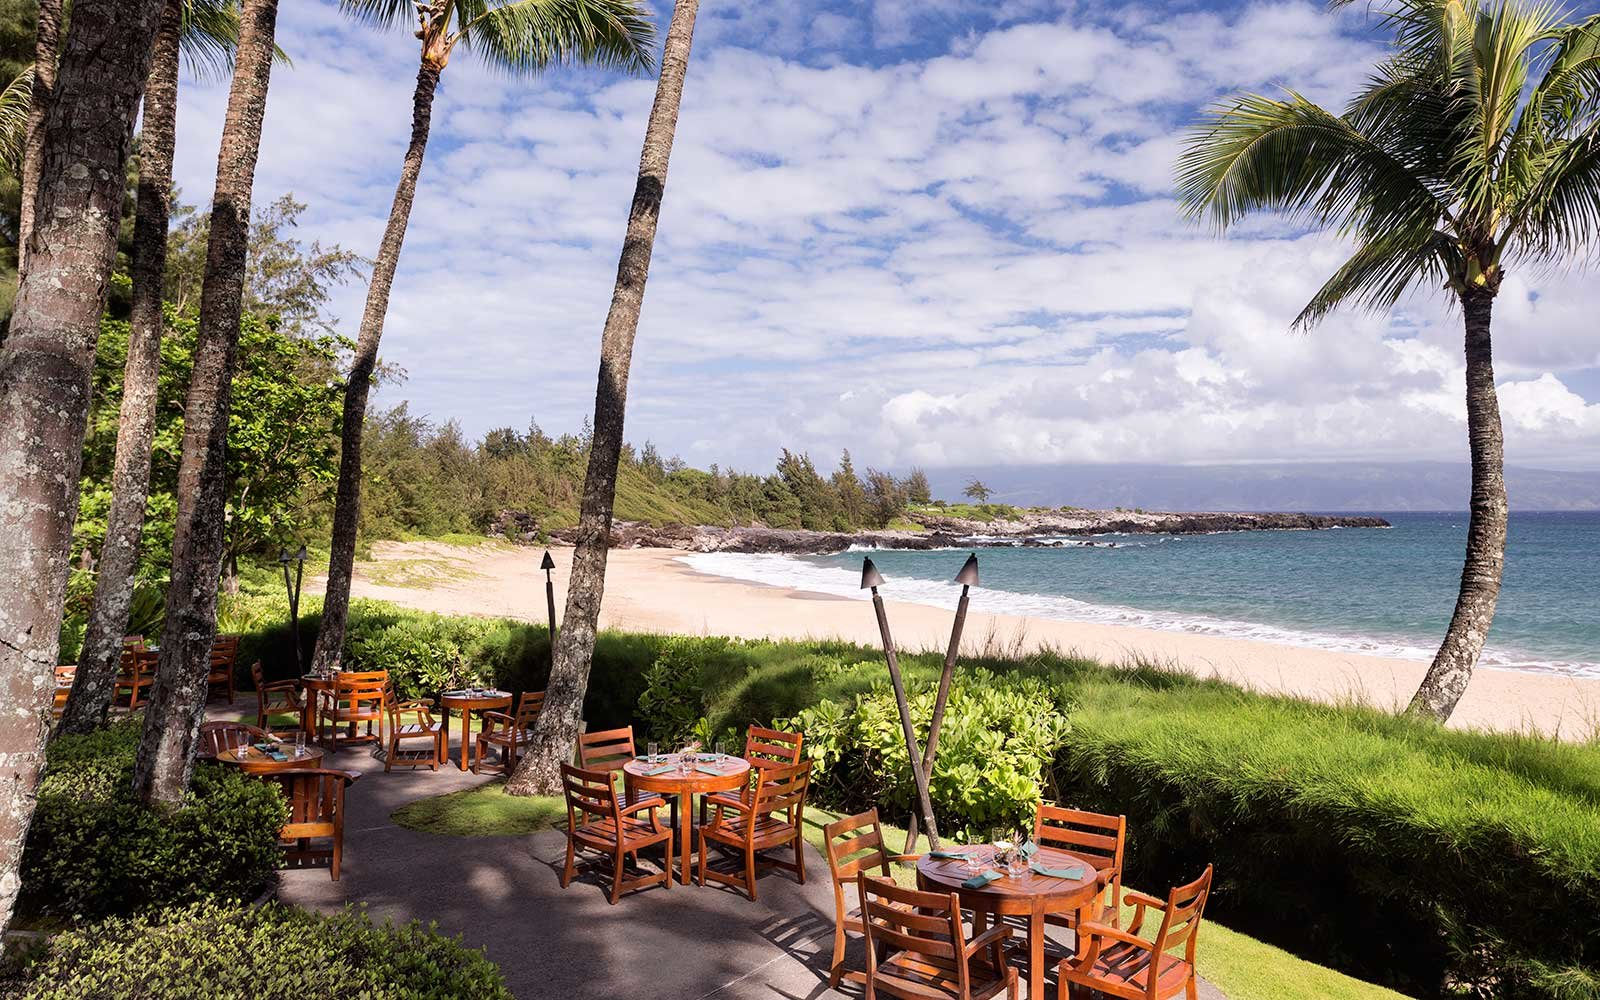 Ritz-Carlton Kapalua Resort Hotel in Hawaii